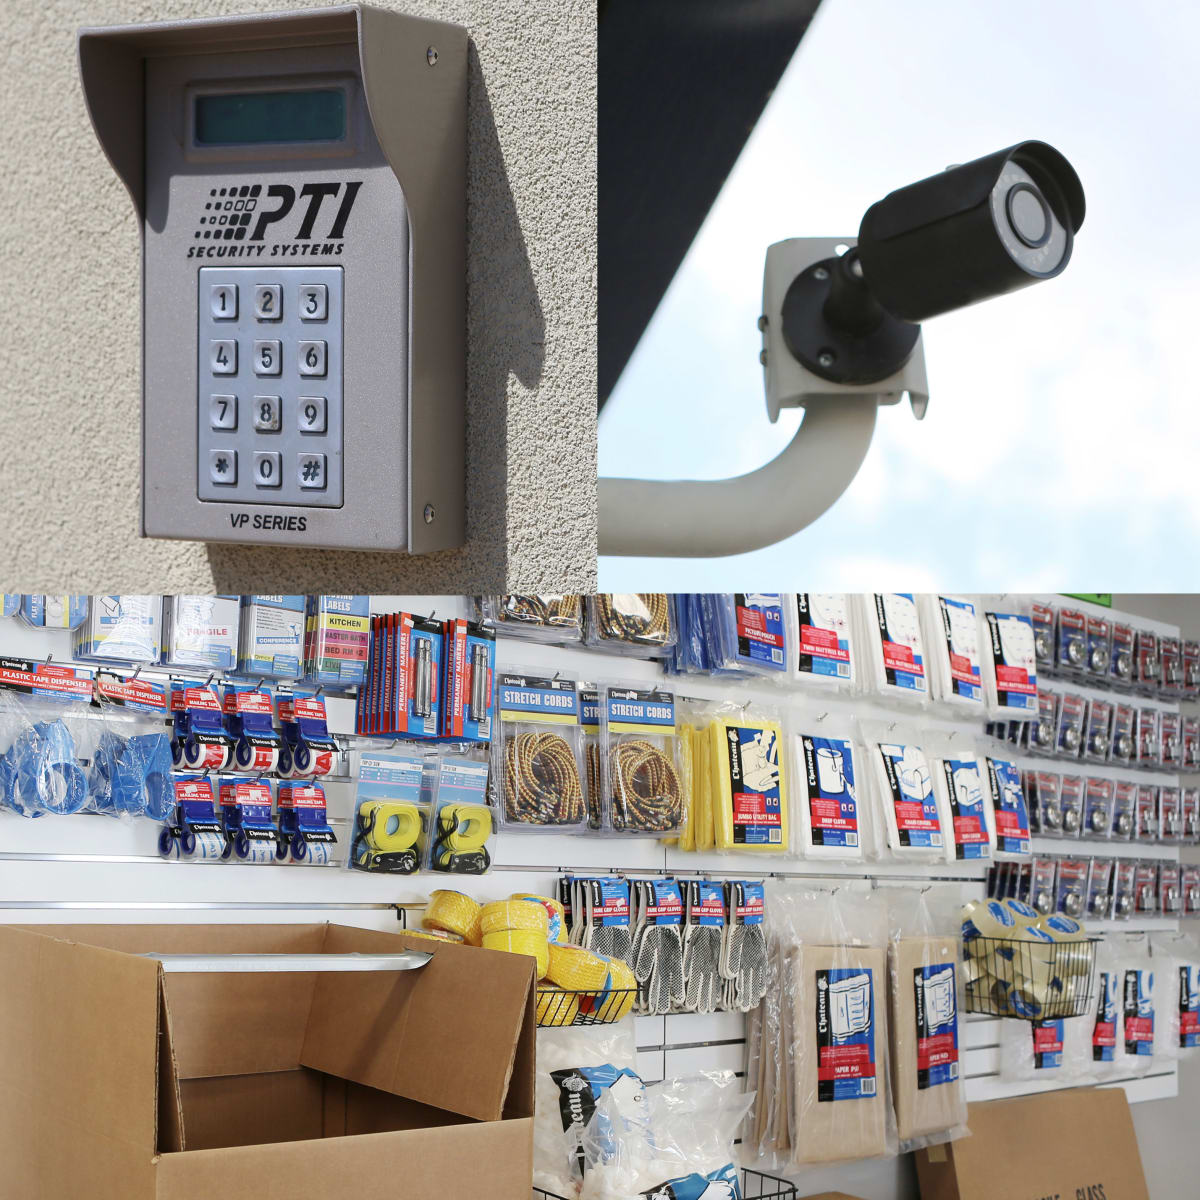 We provide 24 hour security monitoring and sell various moving and packing supplies at Midgard Self Storage in Brevard, North Carolina